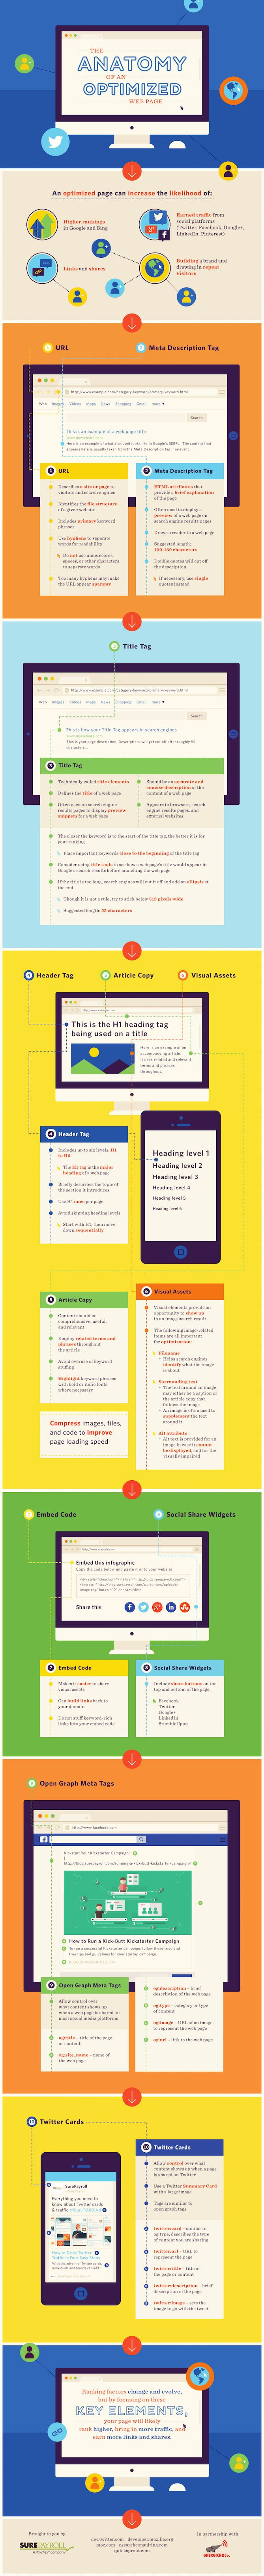 The Anatomy of an Optimized Web Page [Infographic], via @HubSpot